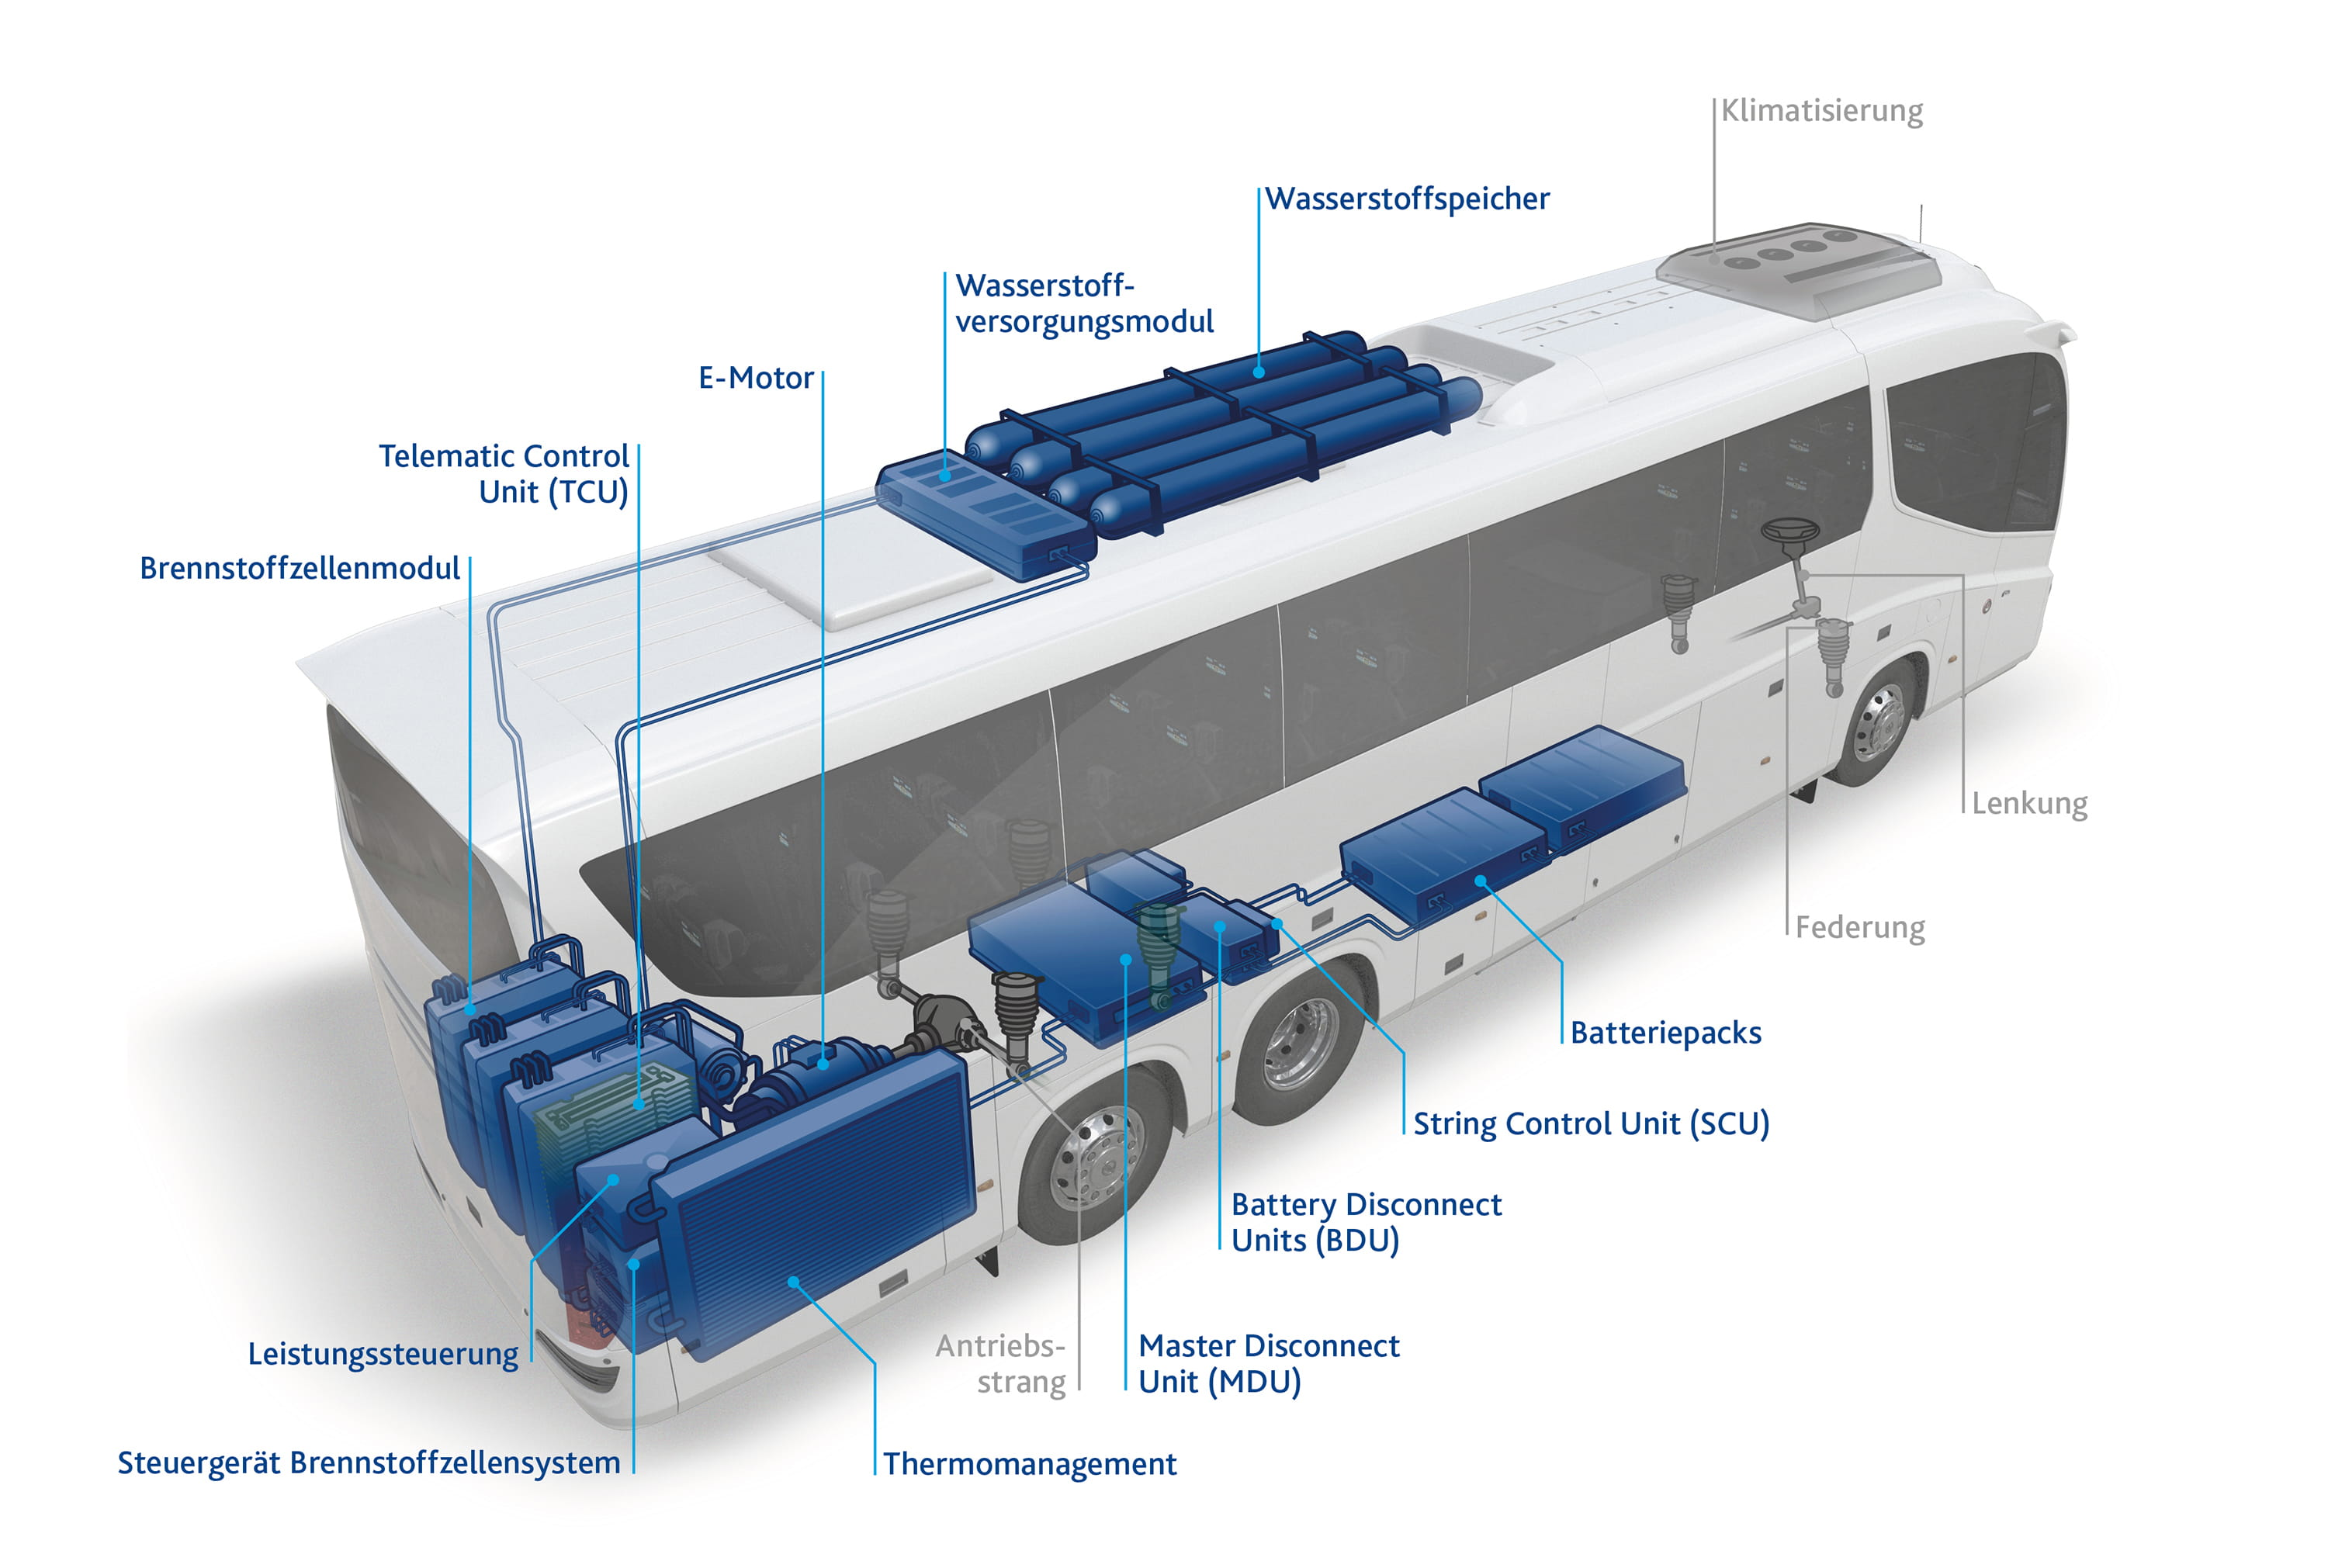 FST FuelCell Bus Illustration